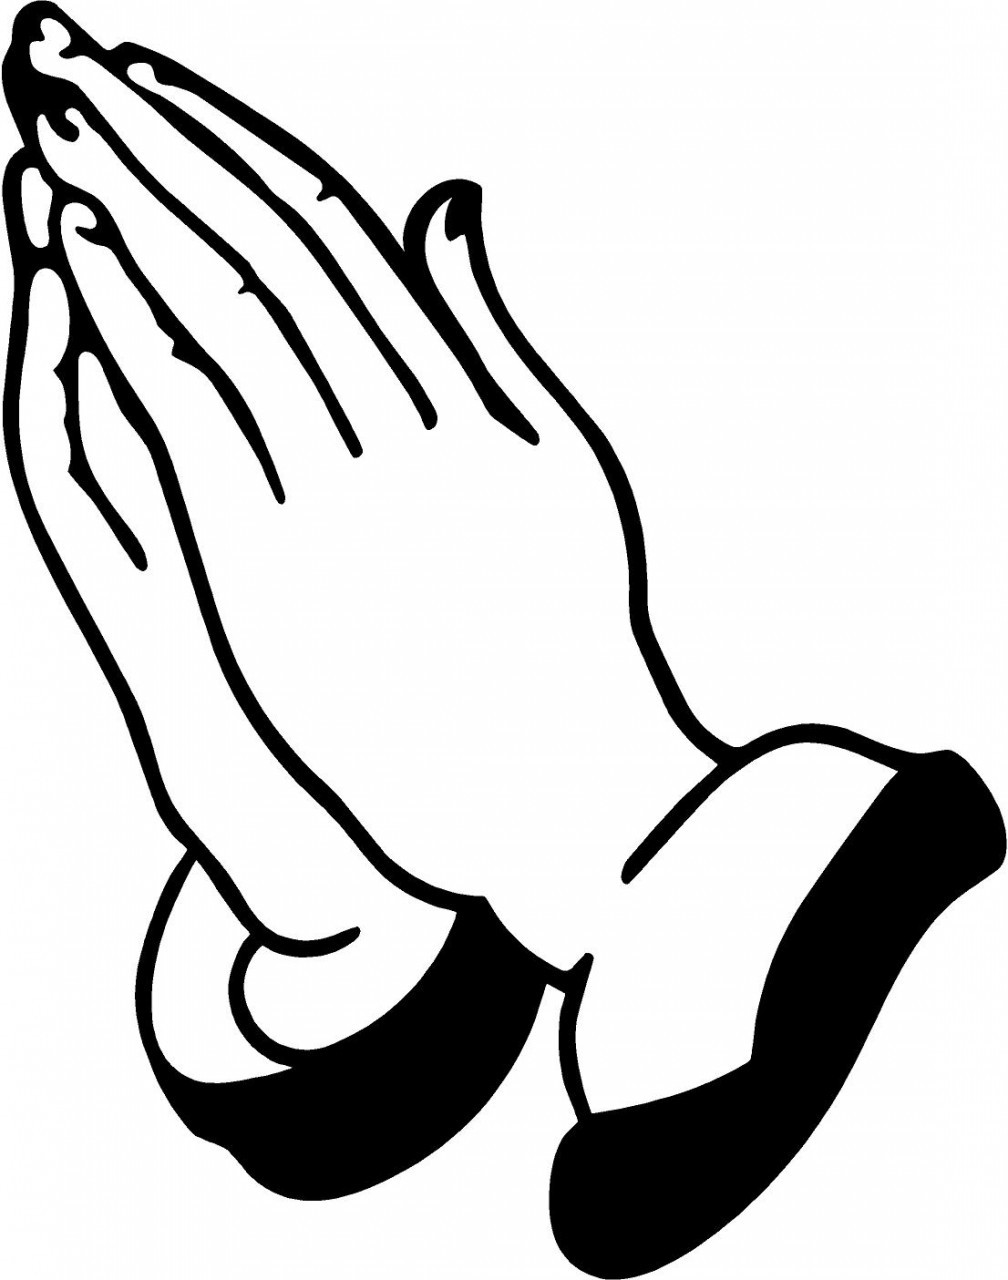 hight resolution of praying hands prayer hands clipart free clipart images